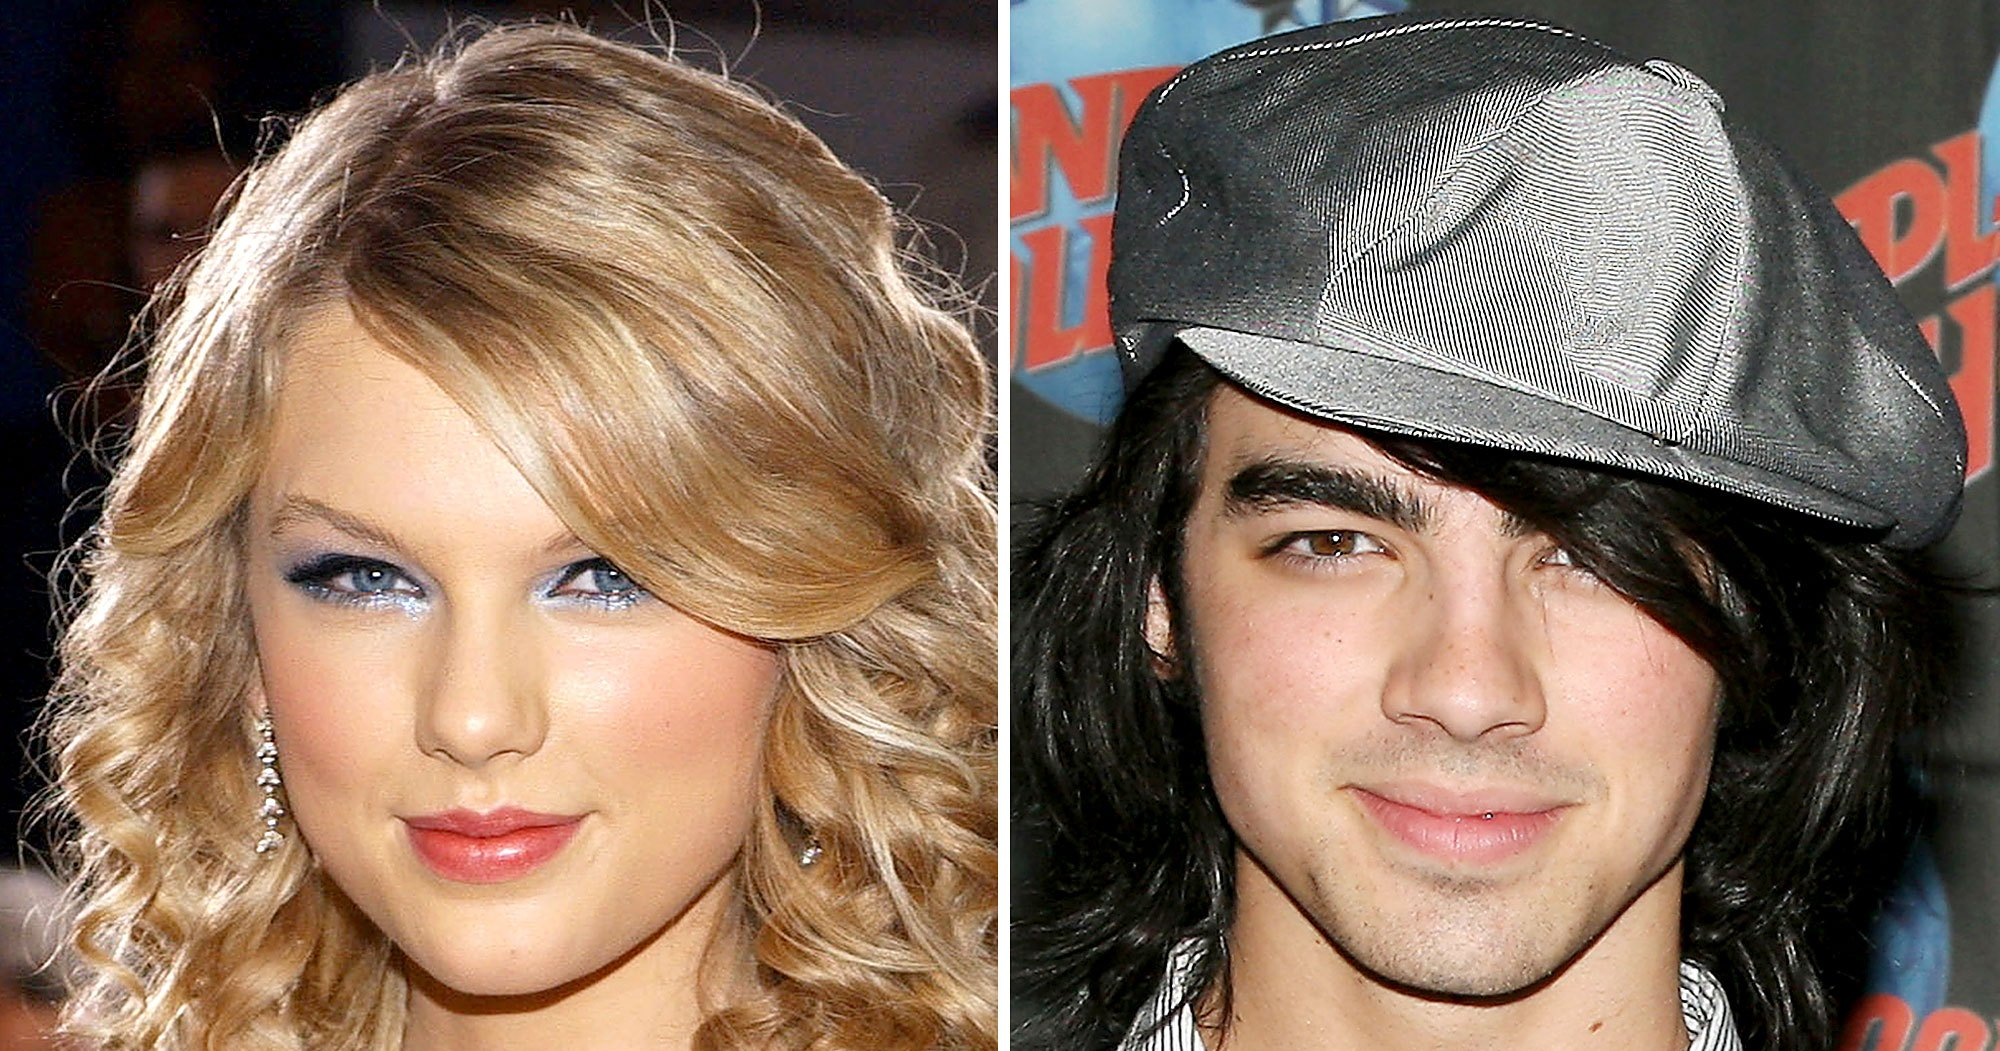 Taylor Swift and Joe Jonas' Ups and Downs Through the Years